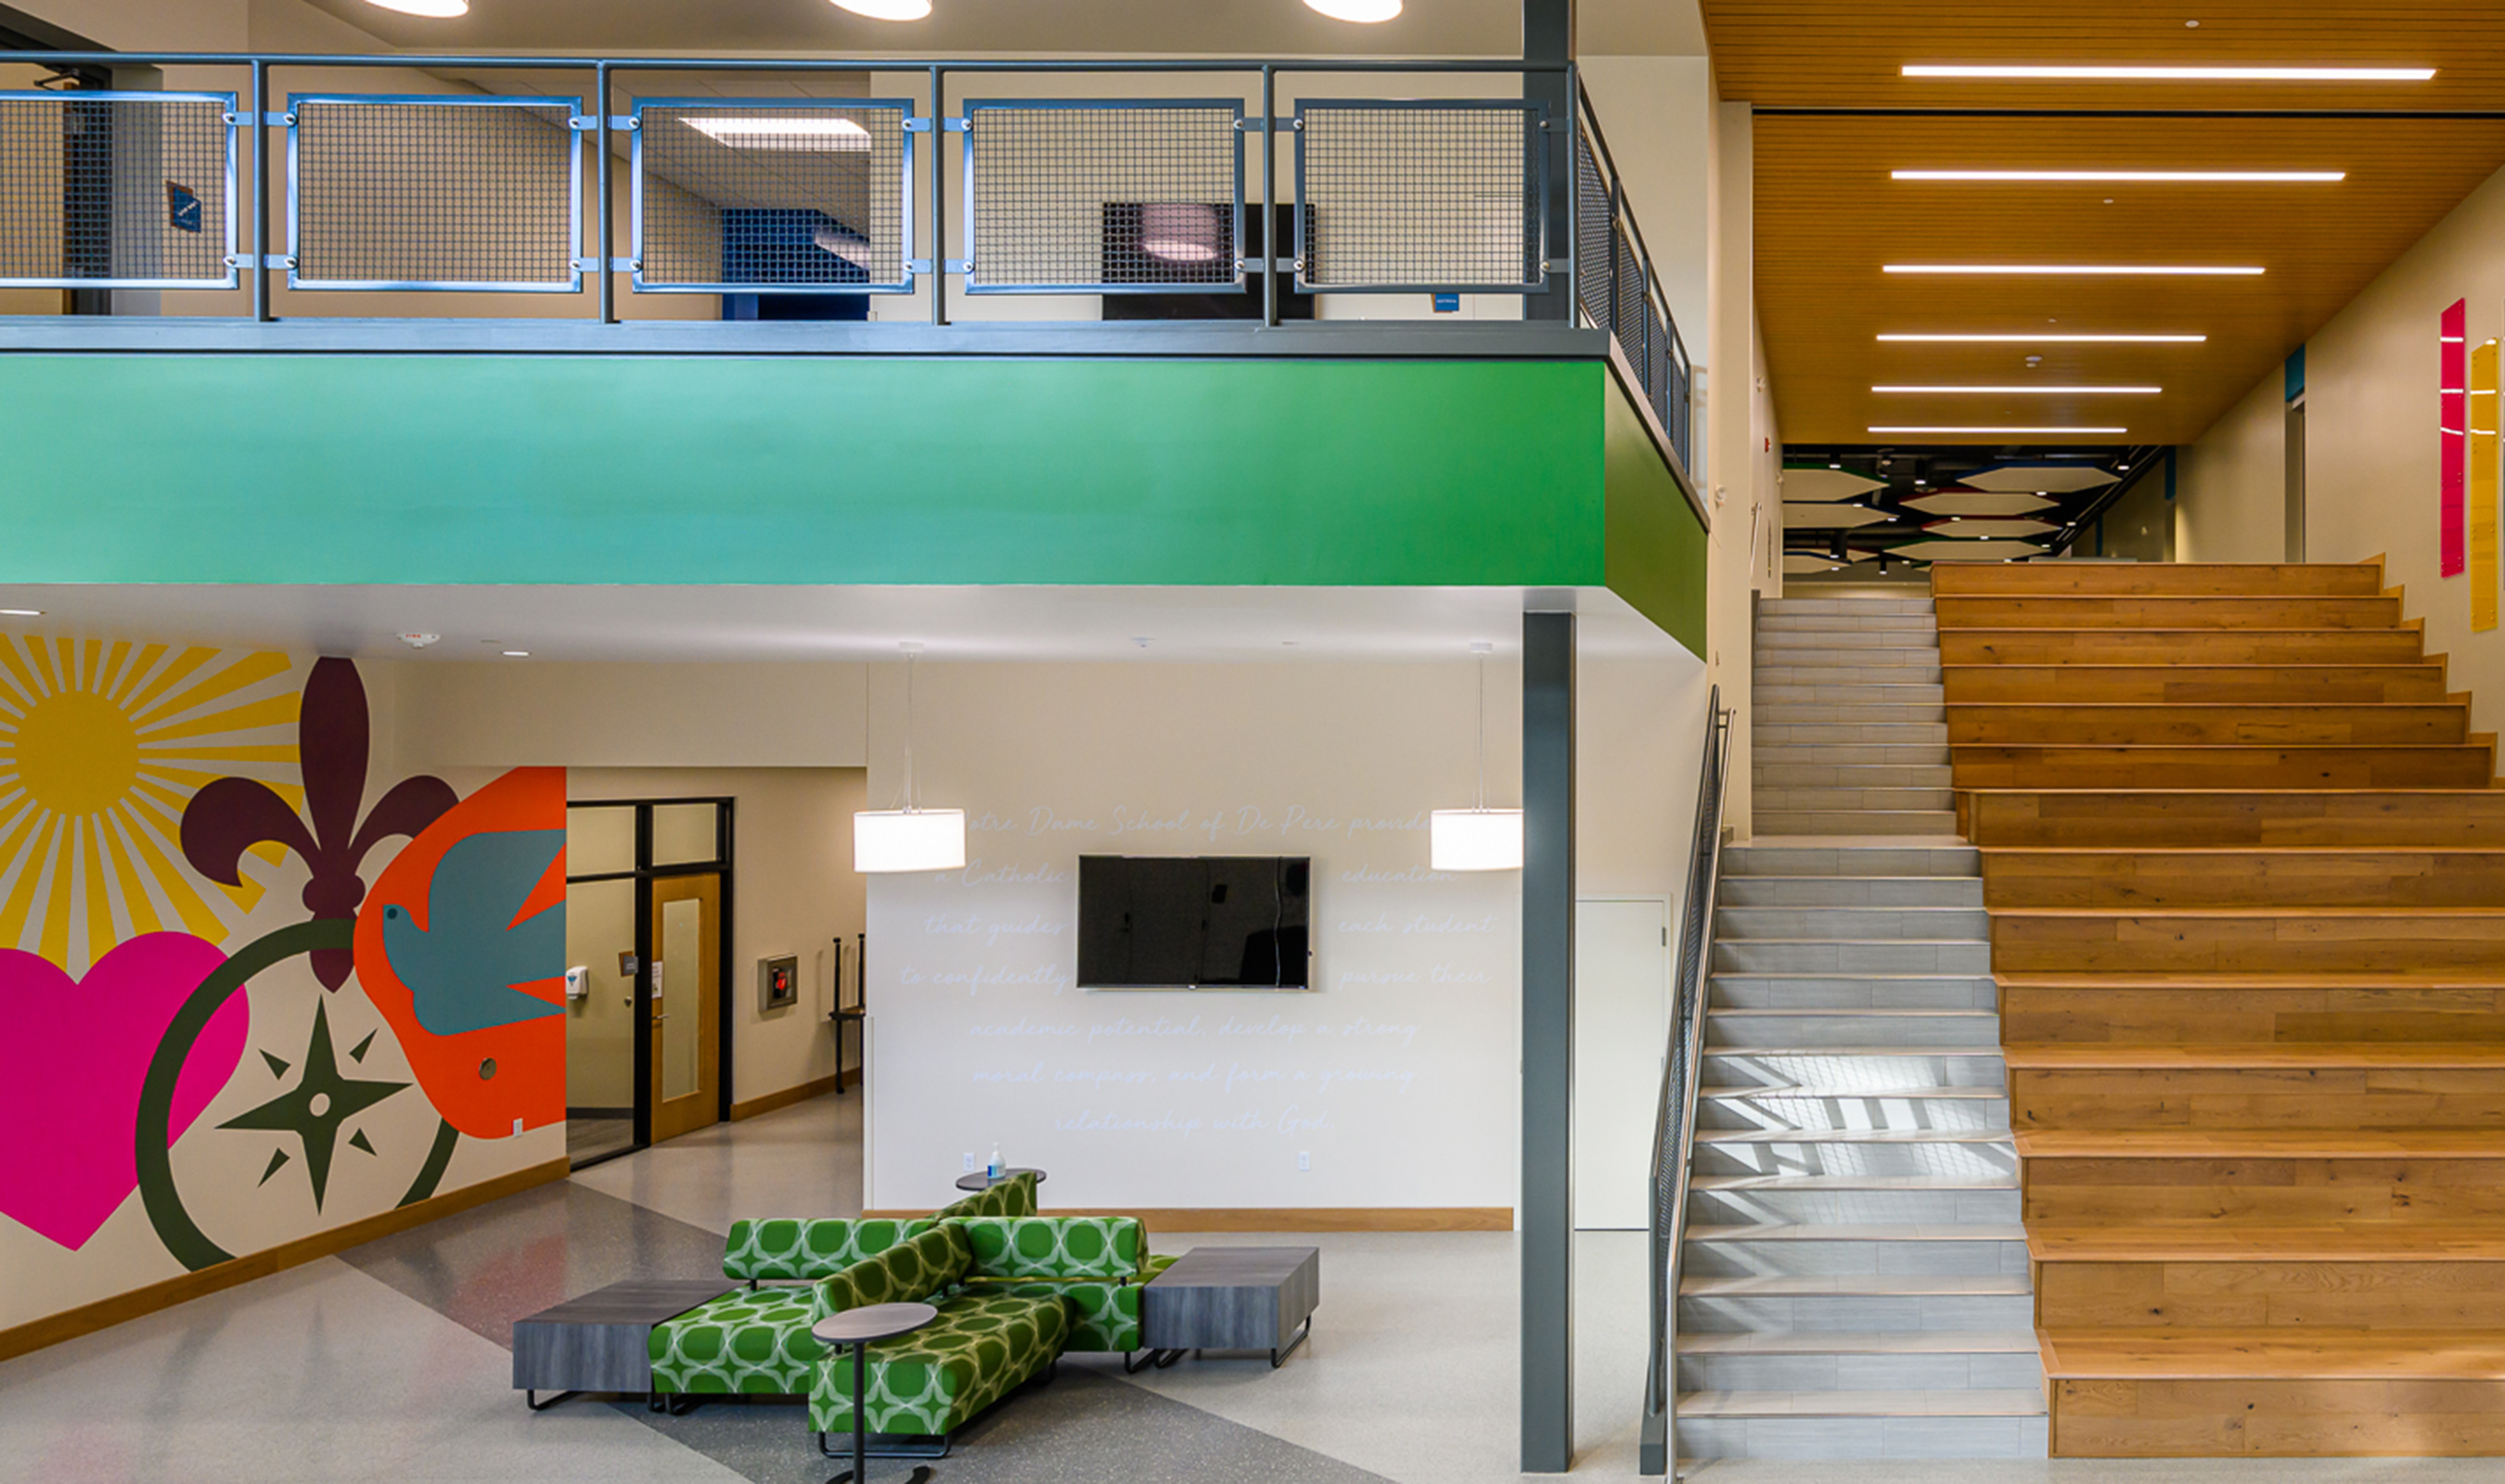 The cerulean blue railing infill panel denotes the second floor of the facility.